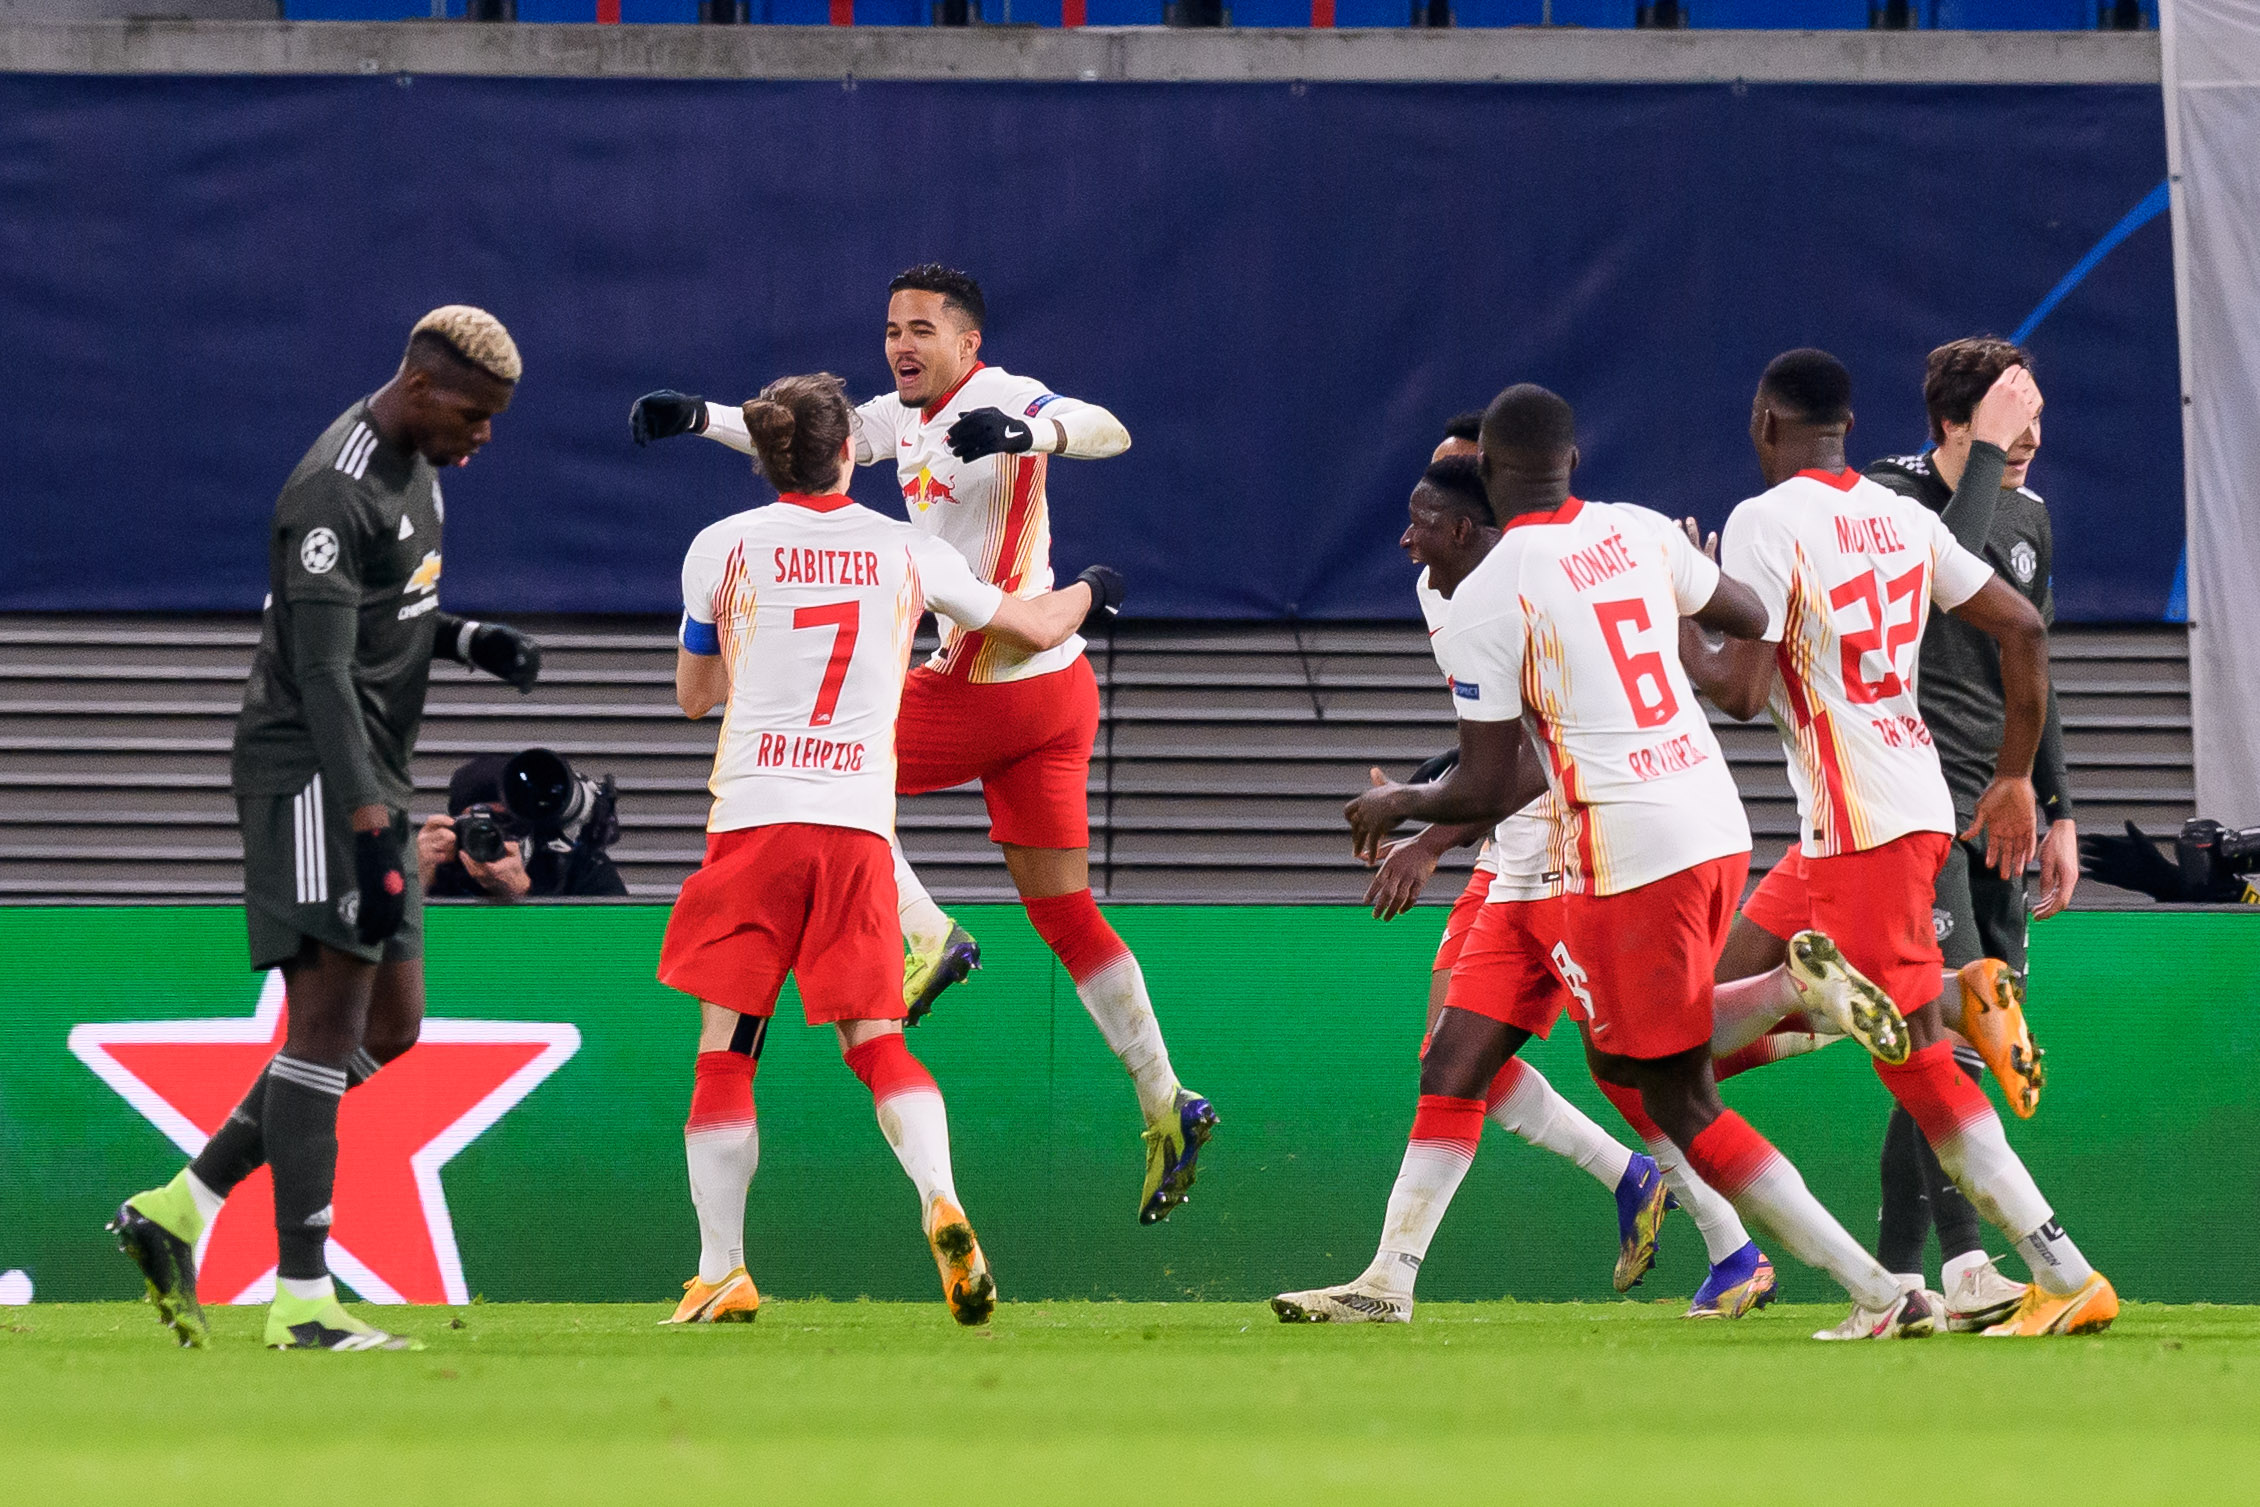 RB Leipzig celebrate against Man United on Tuesday